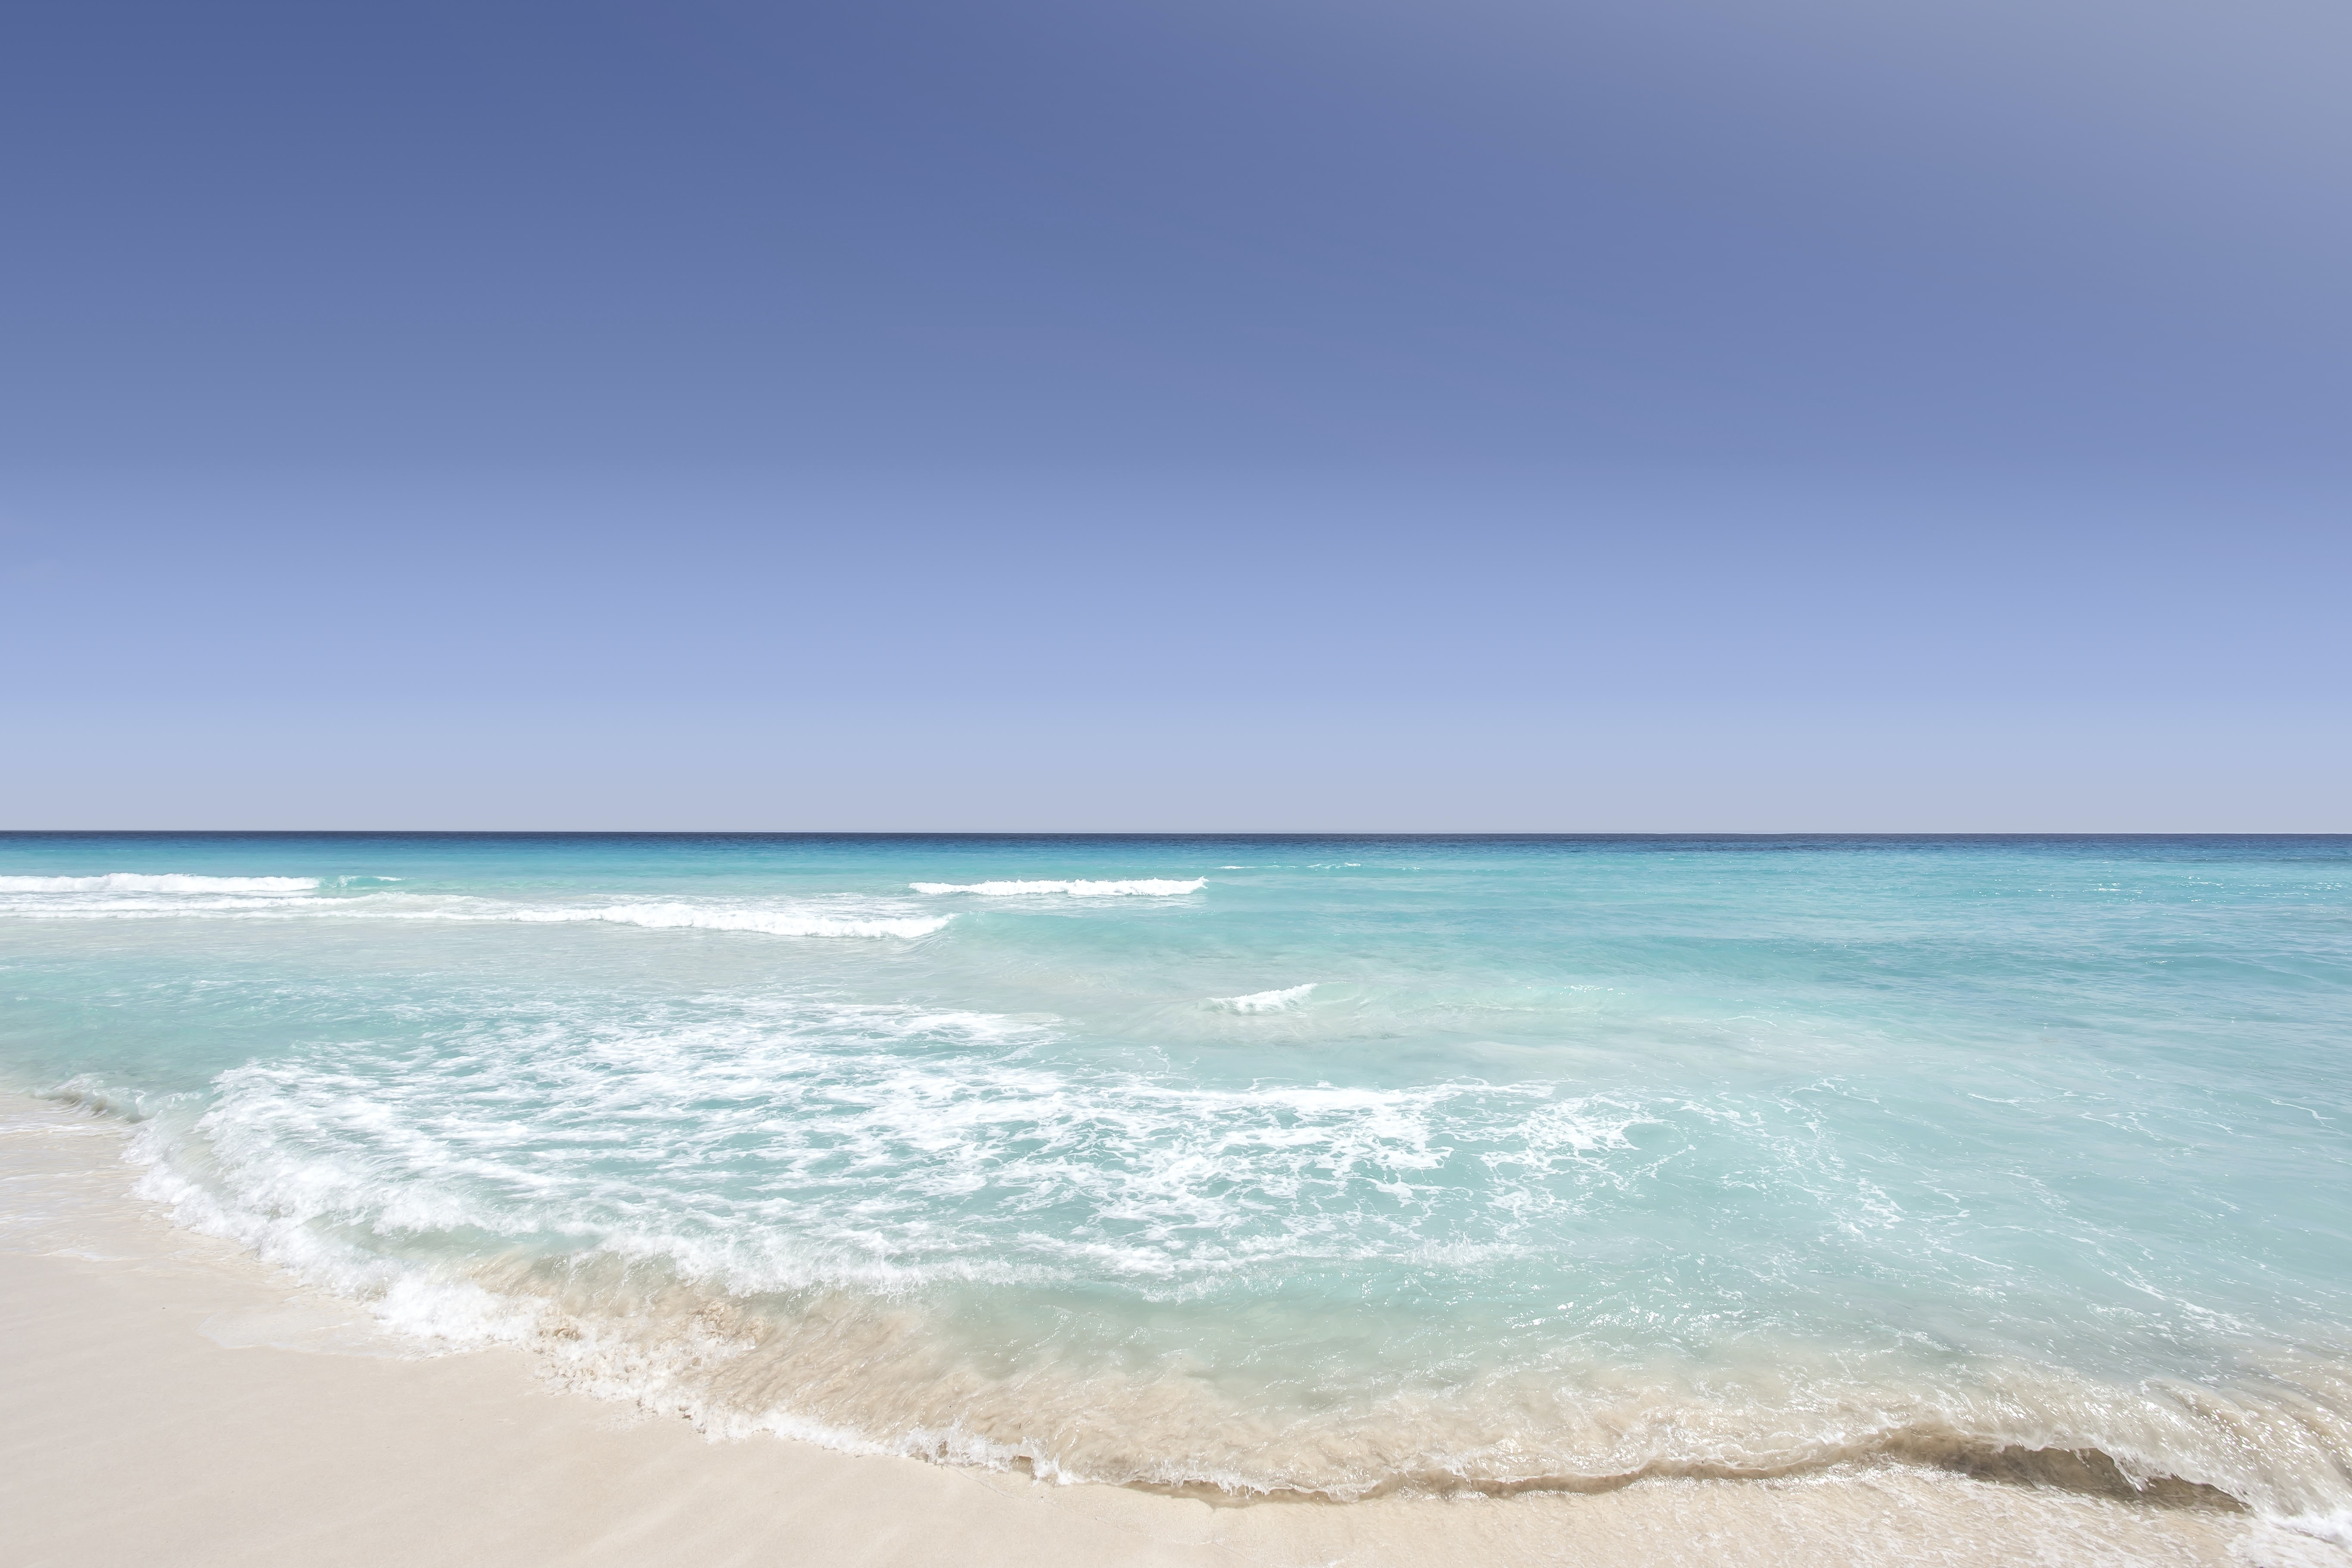 Clear blue ocean washing on the sandy shore on a clear day in Cancún